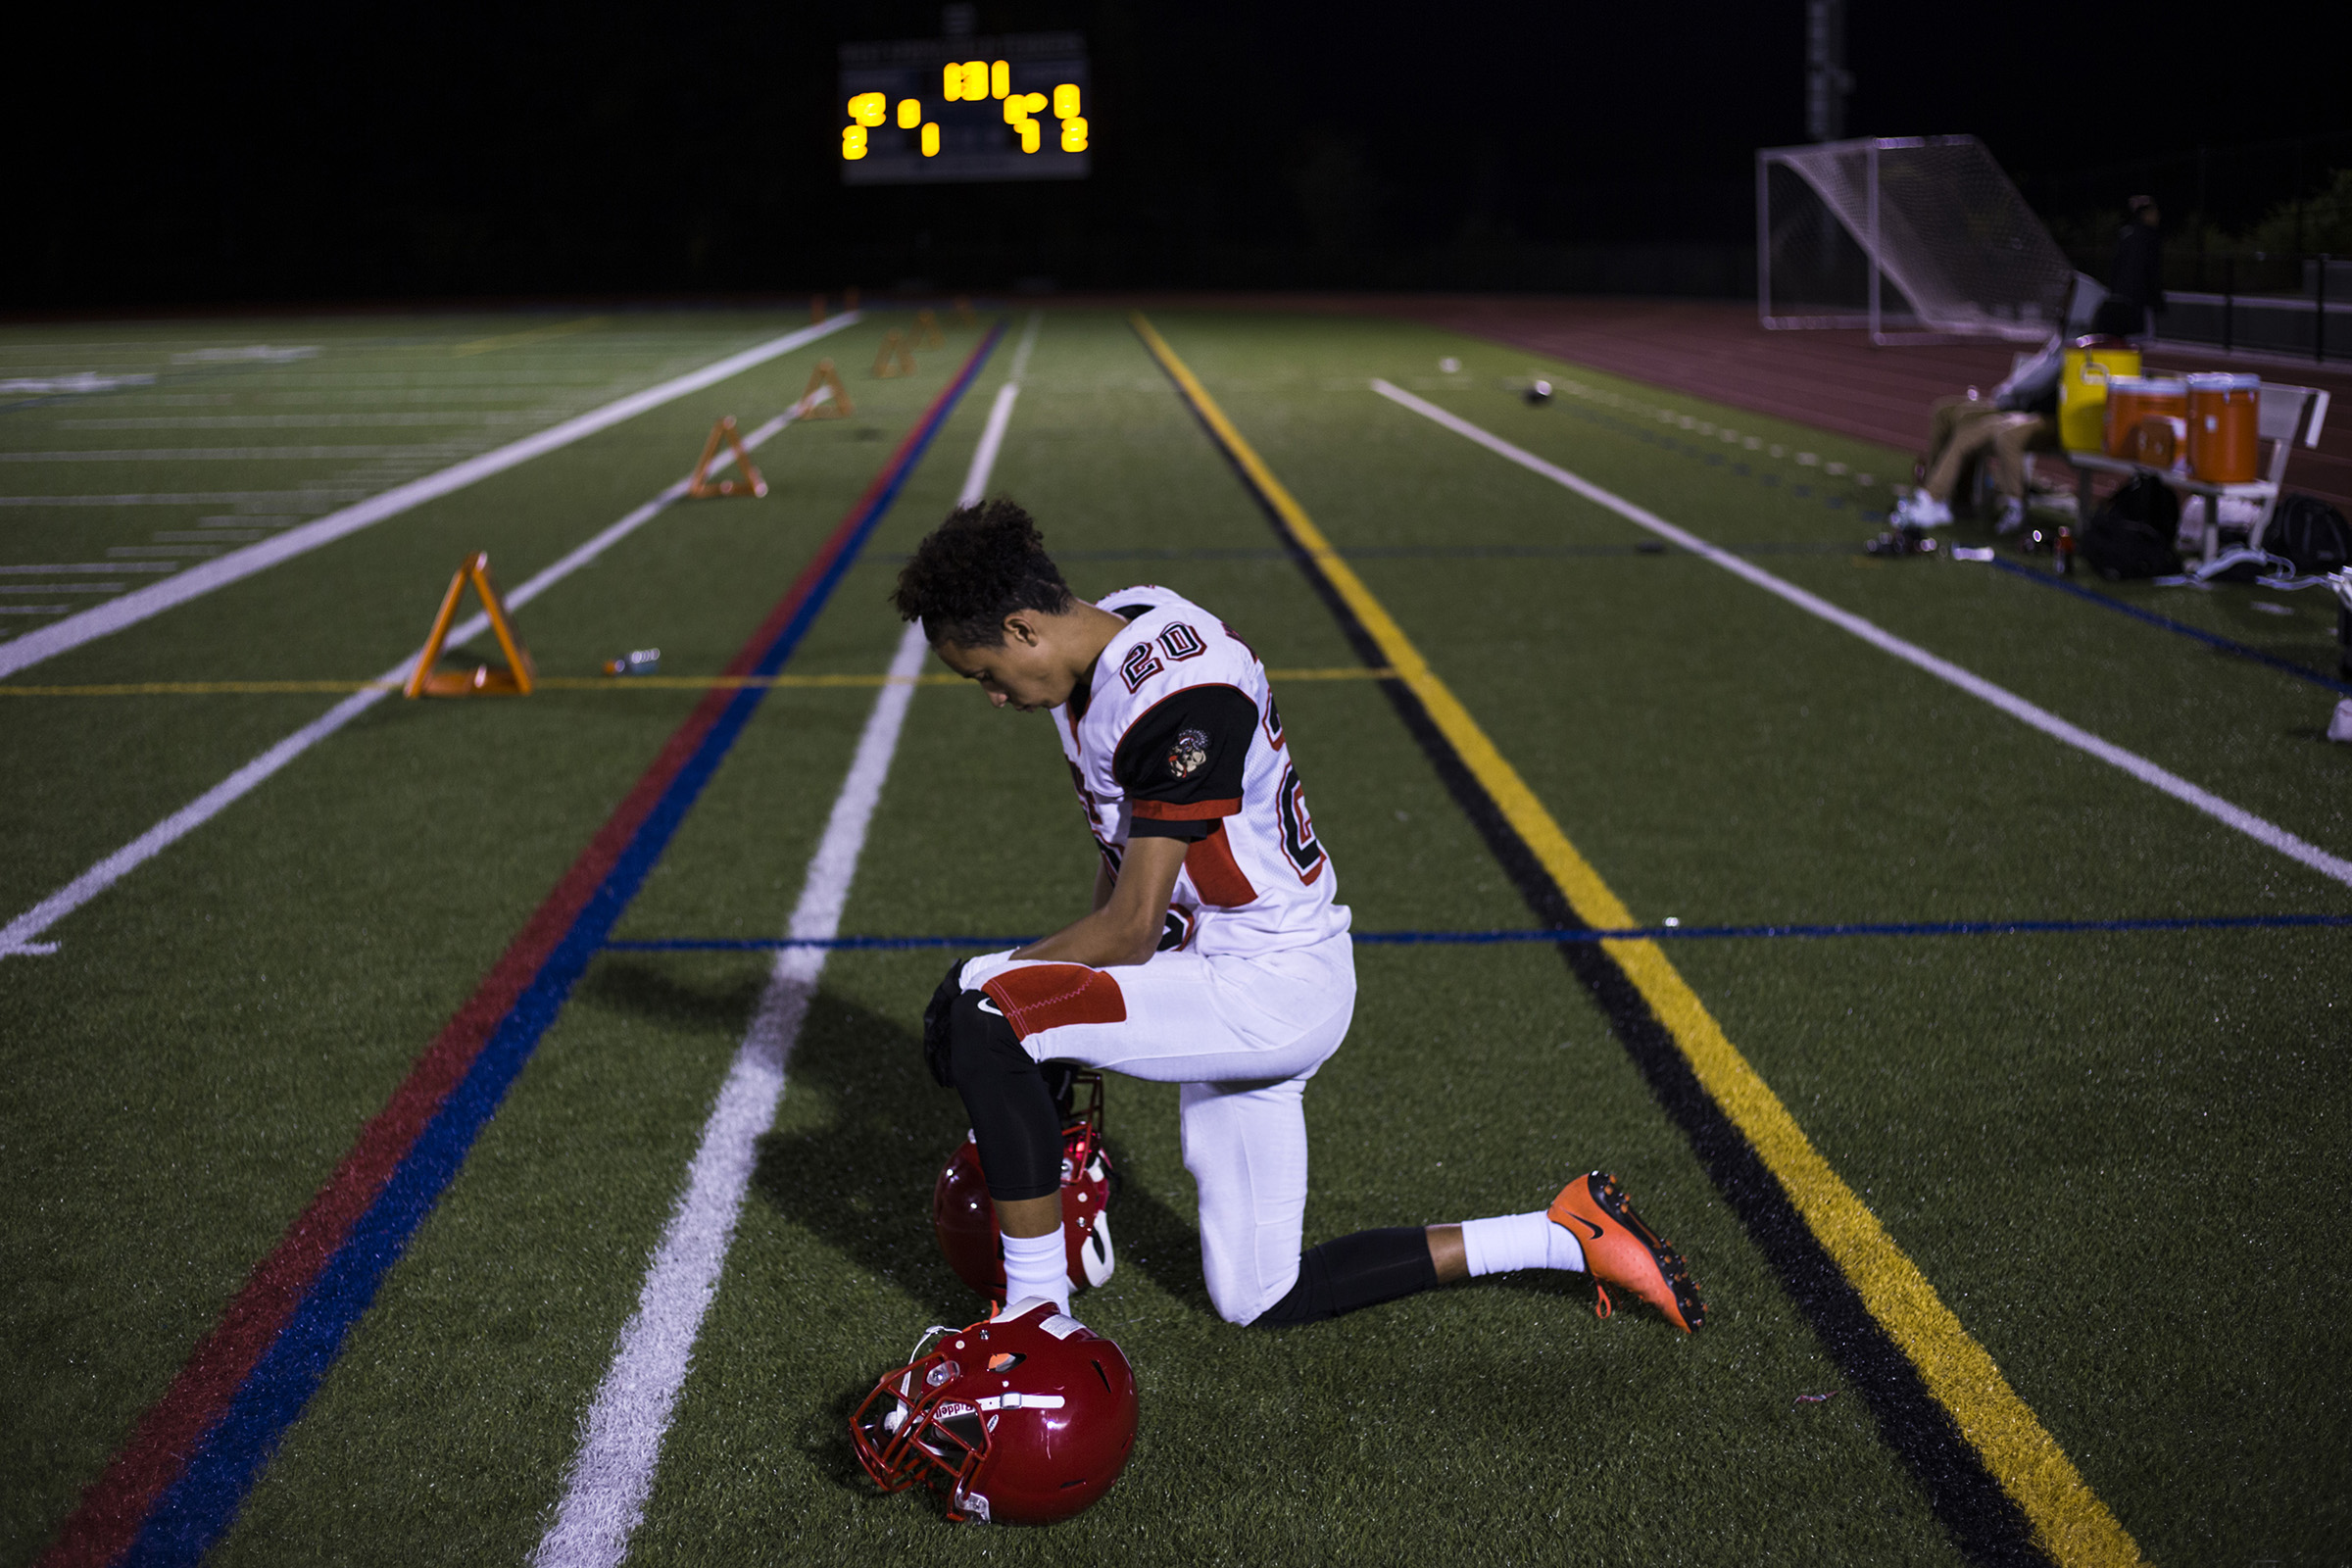 Wide receiver, David Porche Mayes, of the High School of Commerce kneels as he waits for the clock to run out as his team faces a 0-42 half-time score during a game in West Springfield, Mass., on Friday, September, 8, 2017. (Photo by Brittany Greeson)